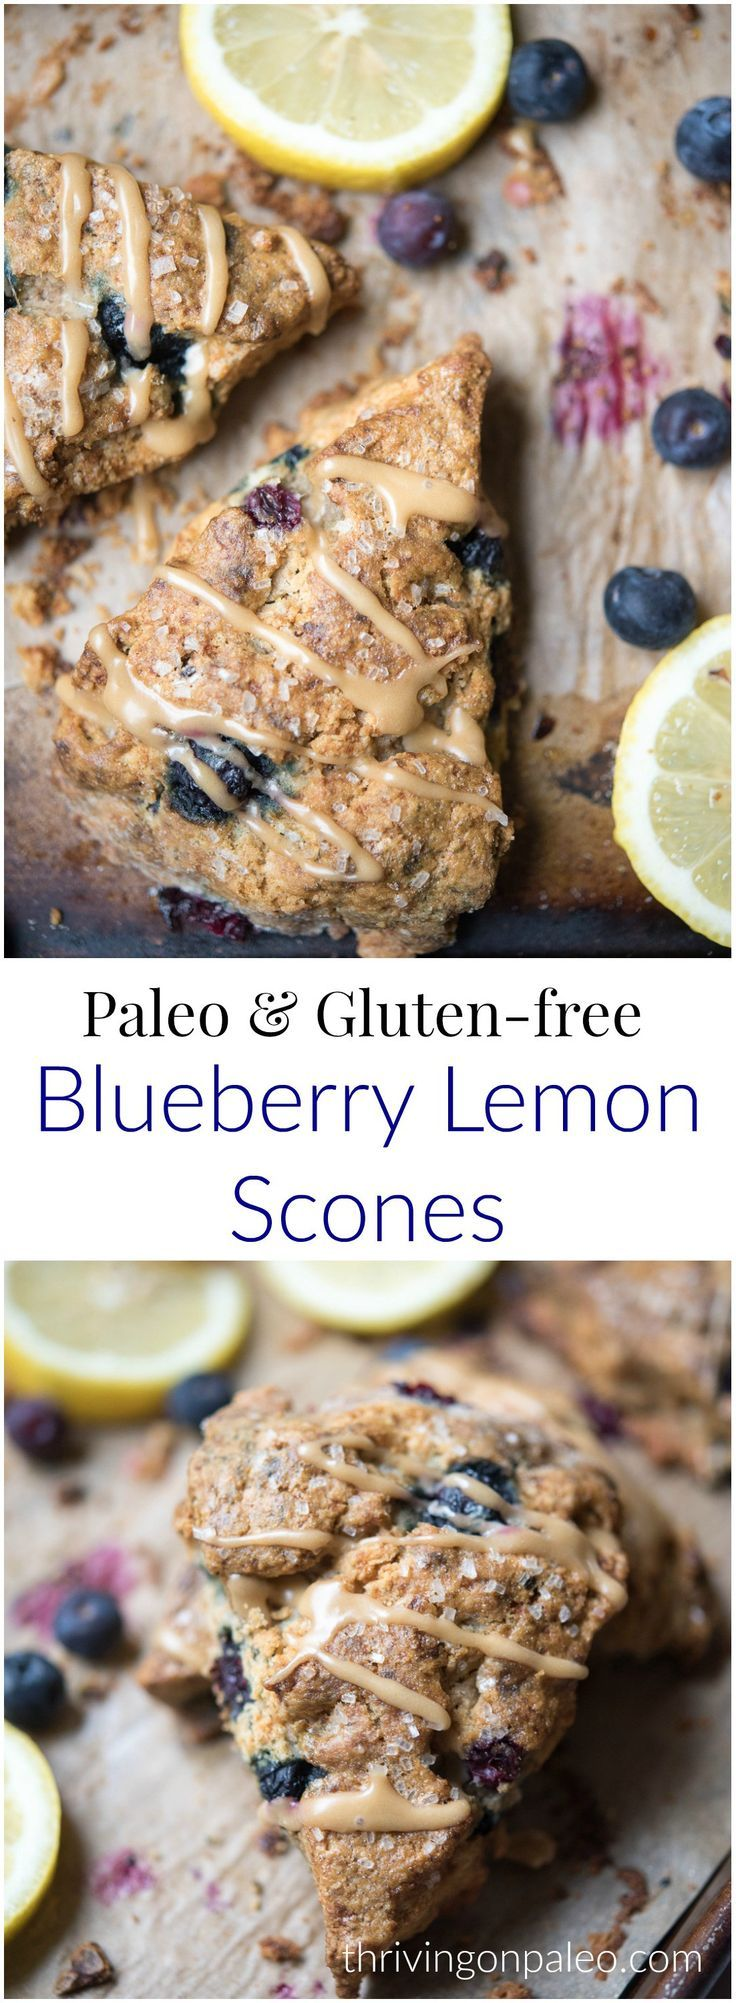 Blueberry Lemon Scones - a Paleo, gluten-free, and grain-free breakfast or snack recipe that is flaky and buttery, especially with the irresistible lemon glaze!